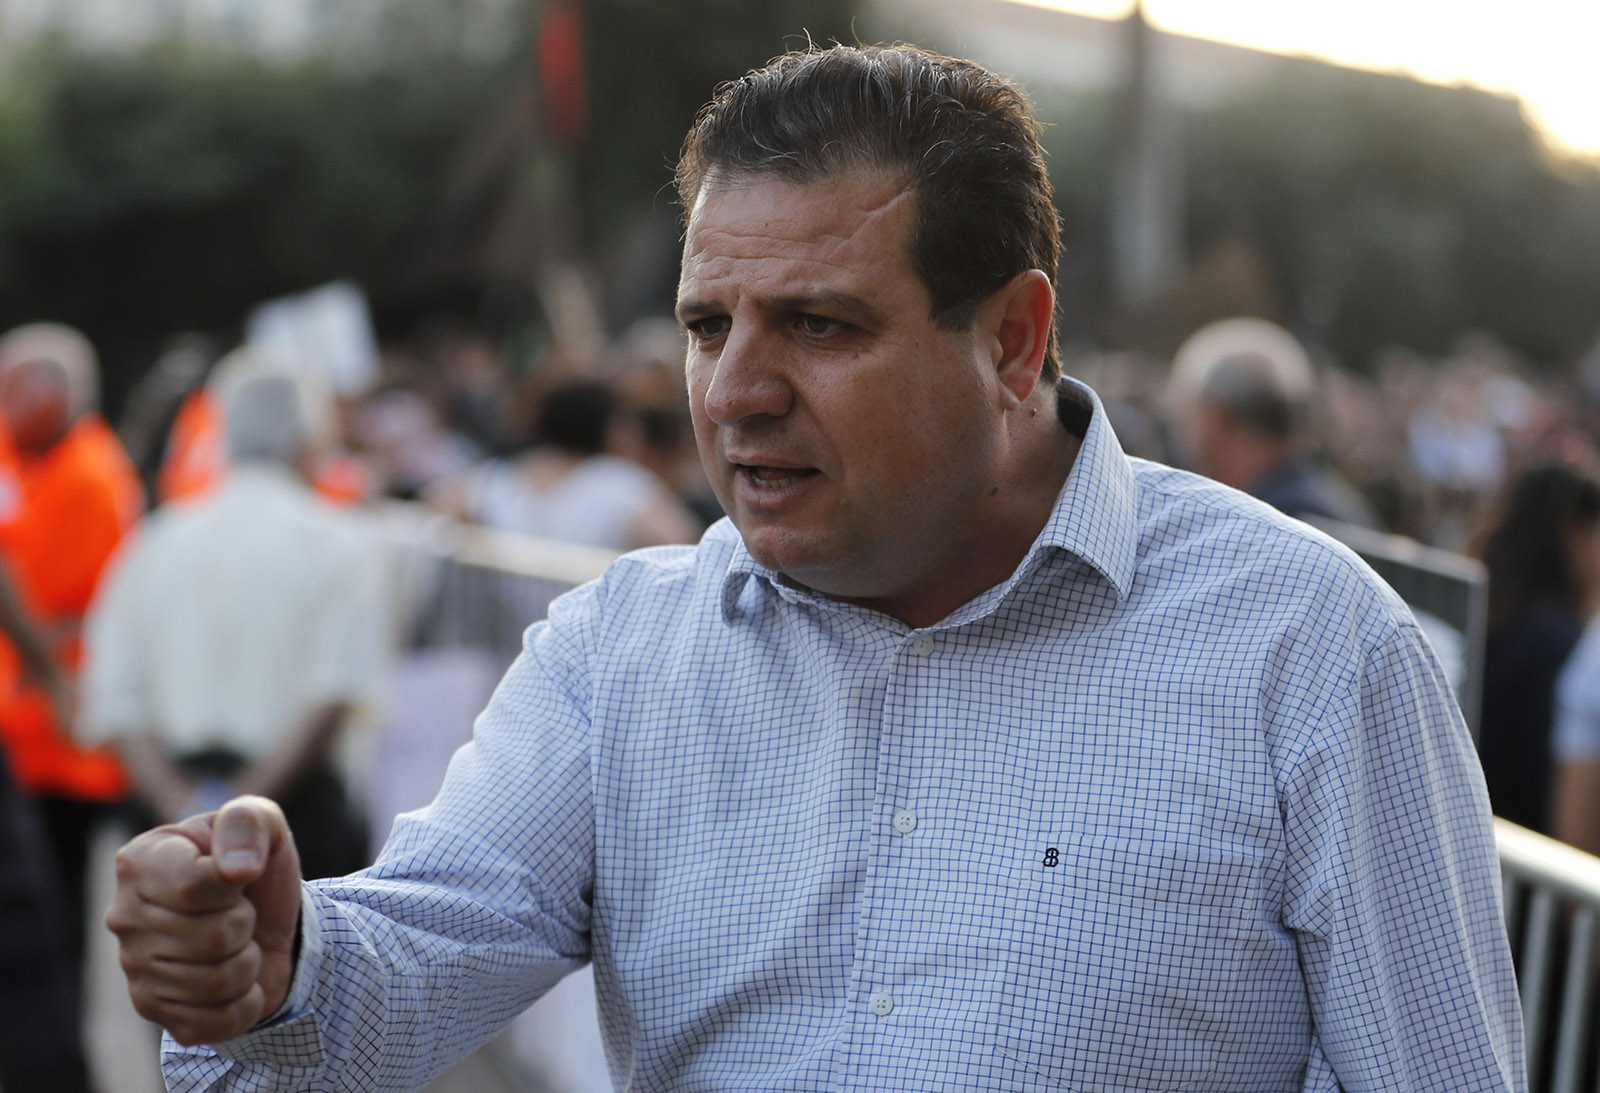 Ayman Odeh speaking at a protest